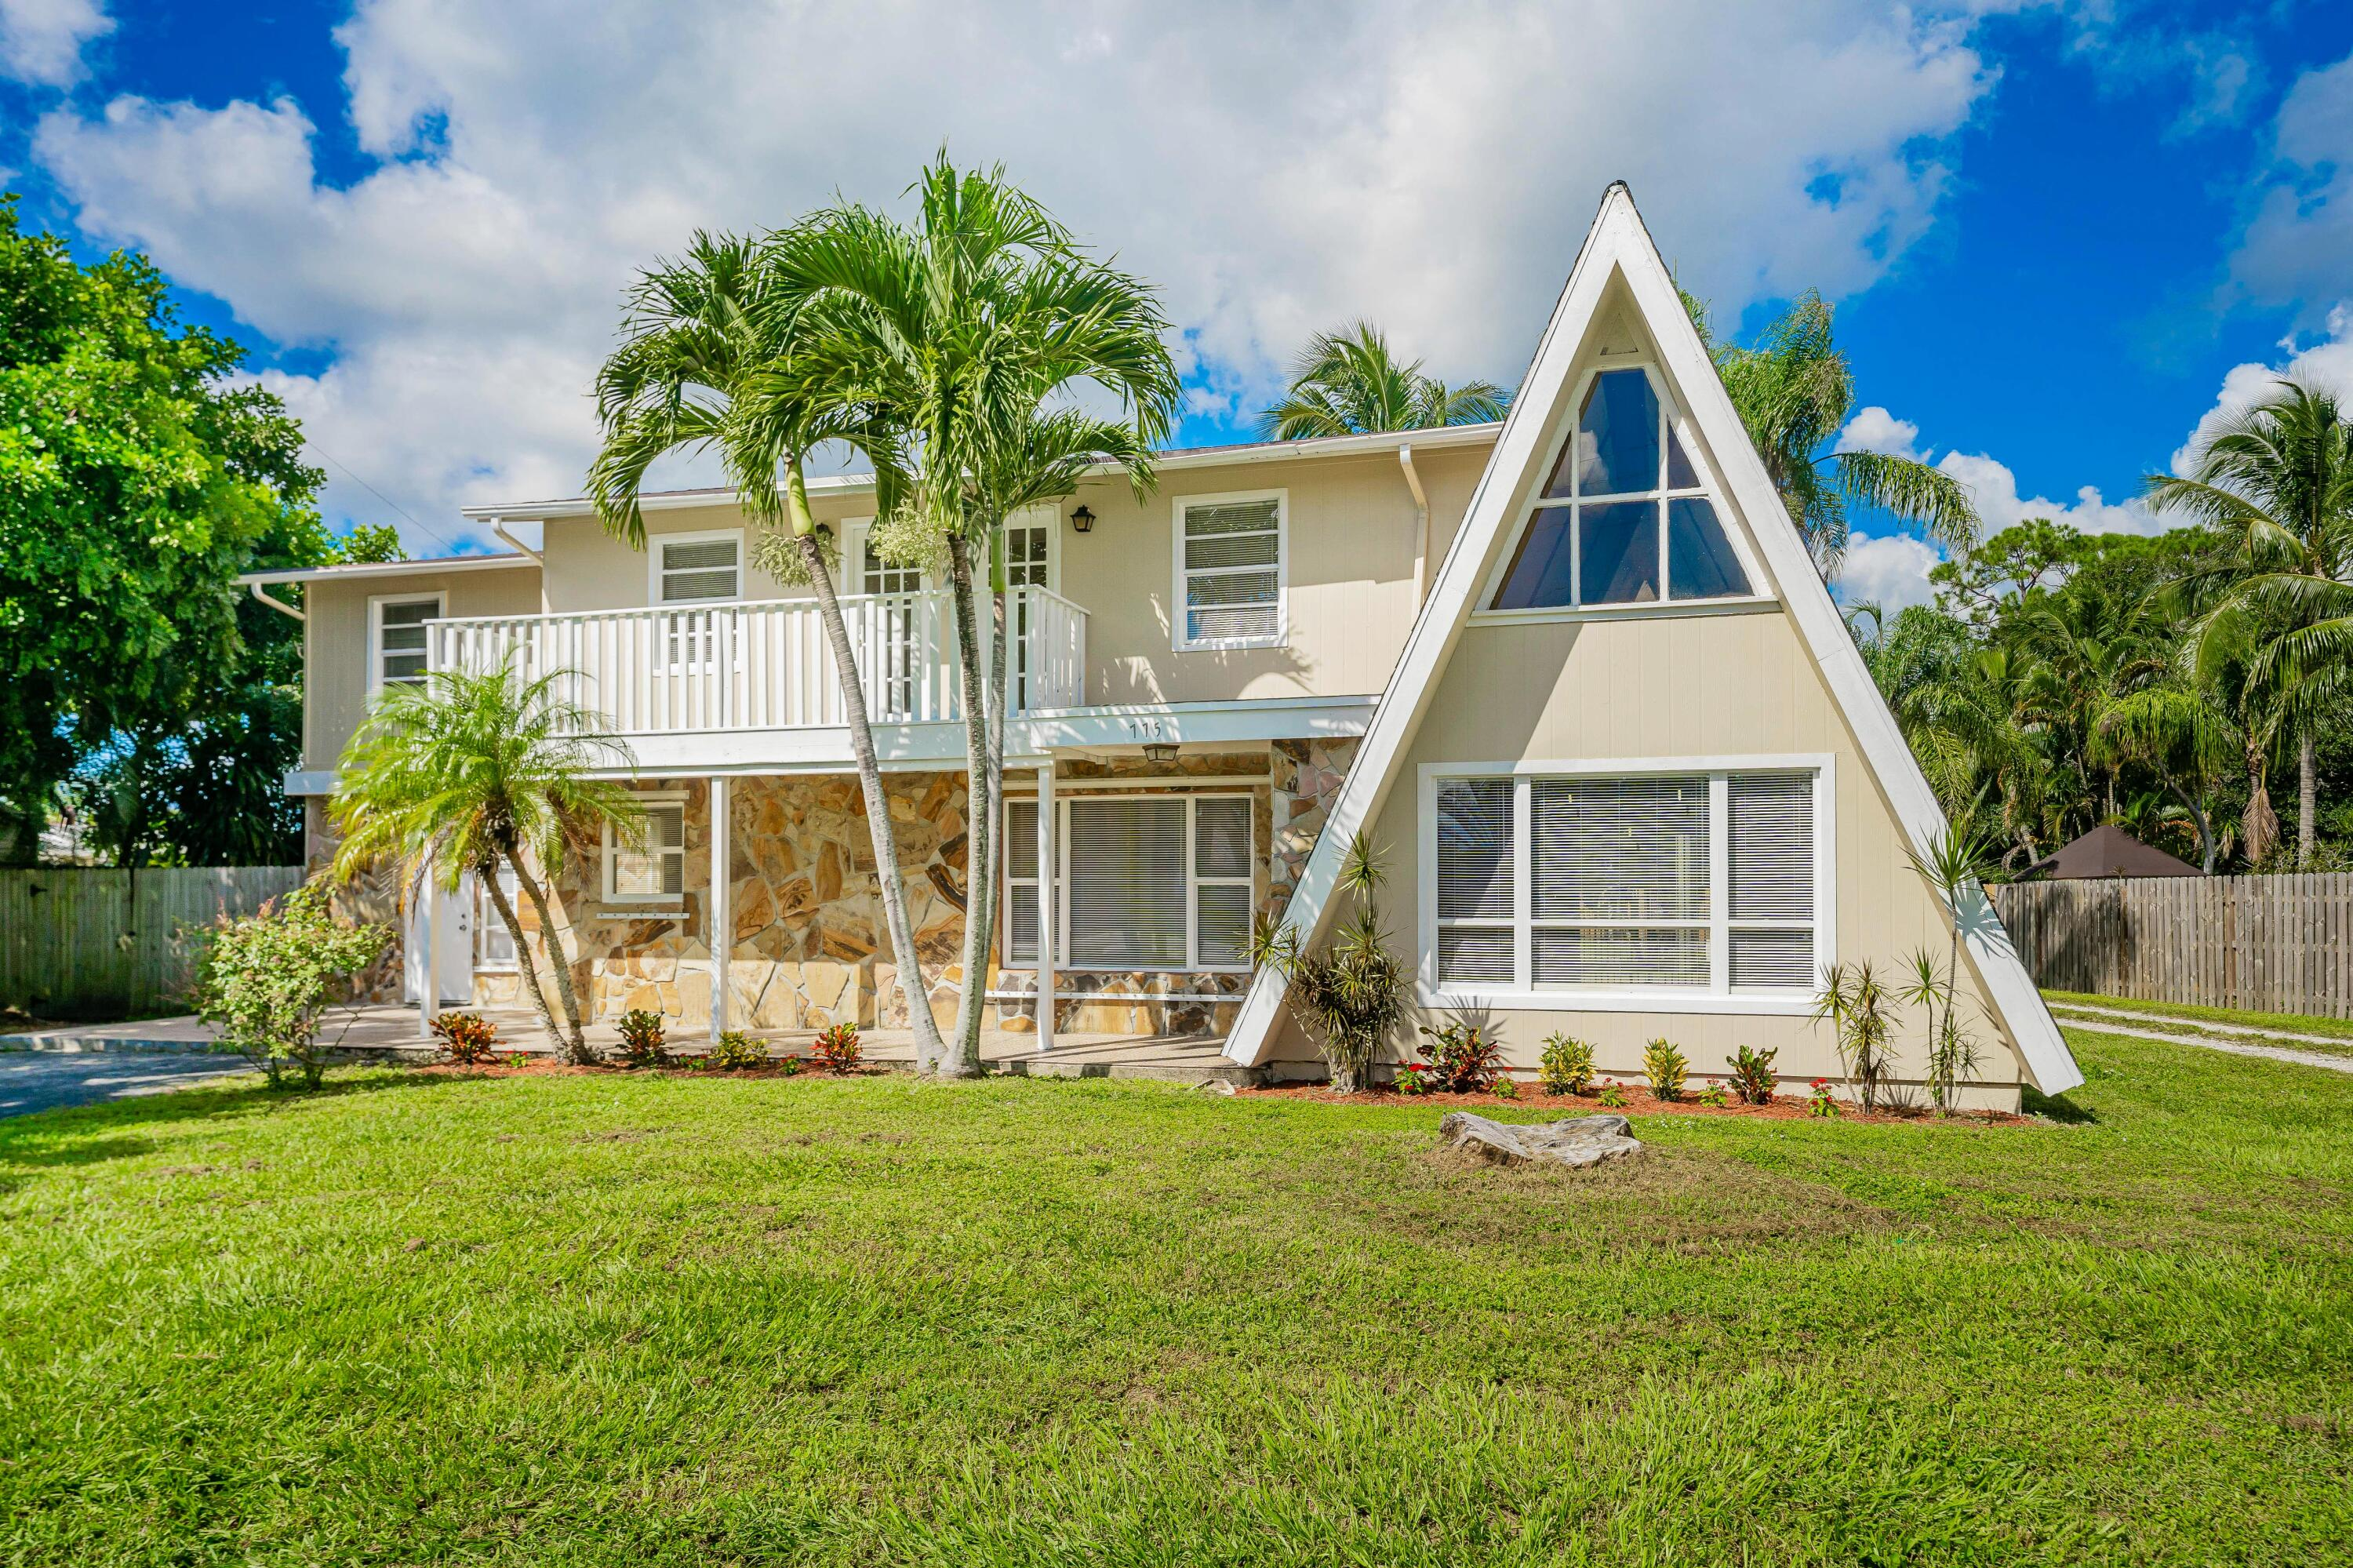 775 Chase, West Palm Beach, Florida 33415